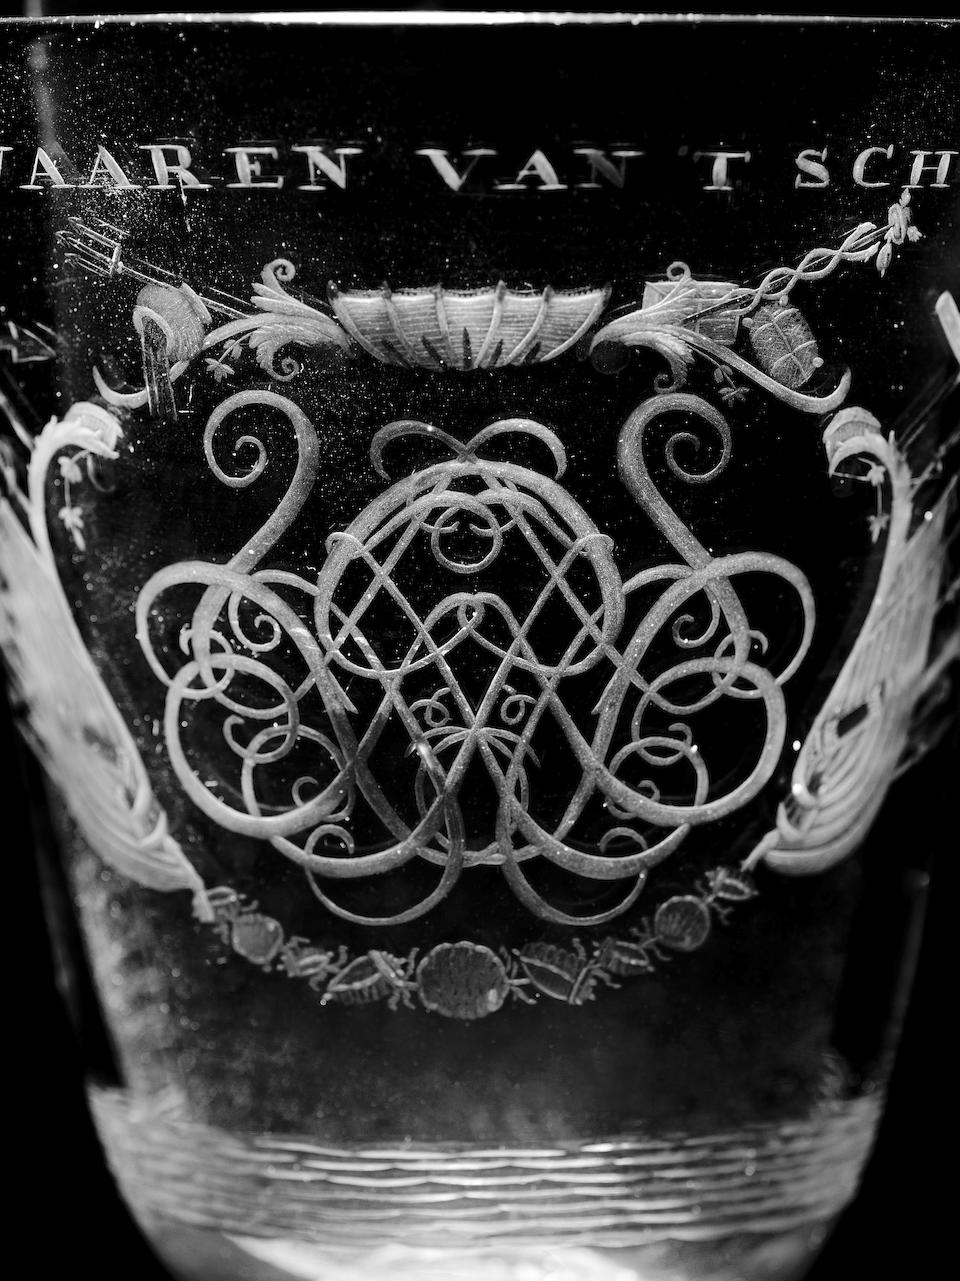 A fine Dutch-engraved VOC goblet circa 1770